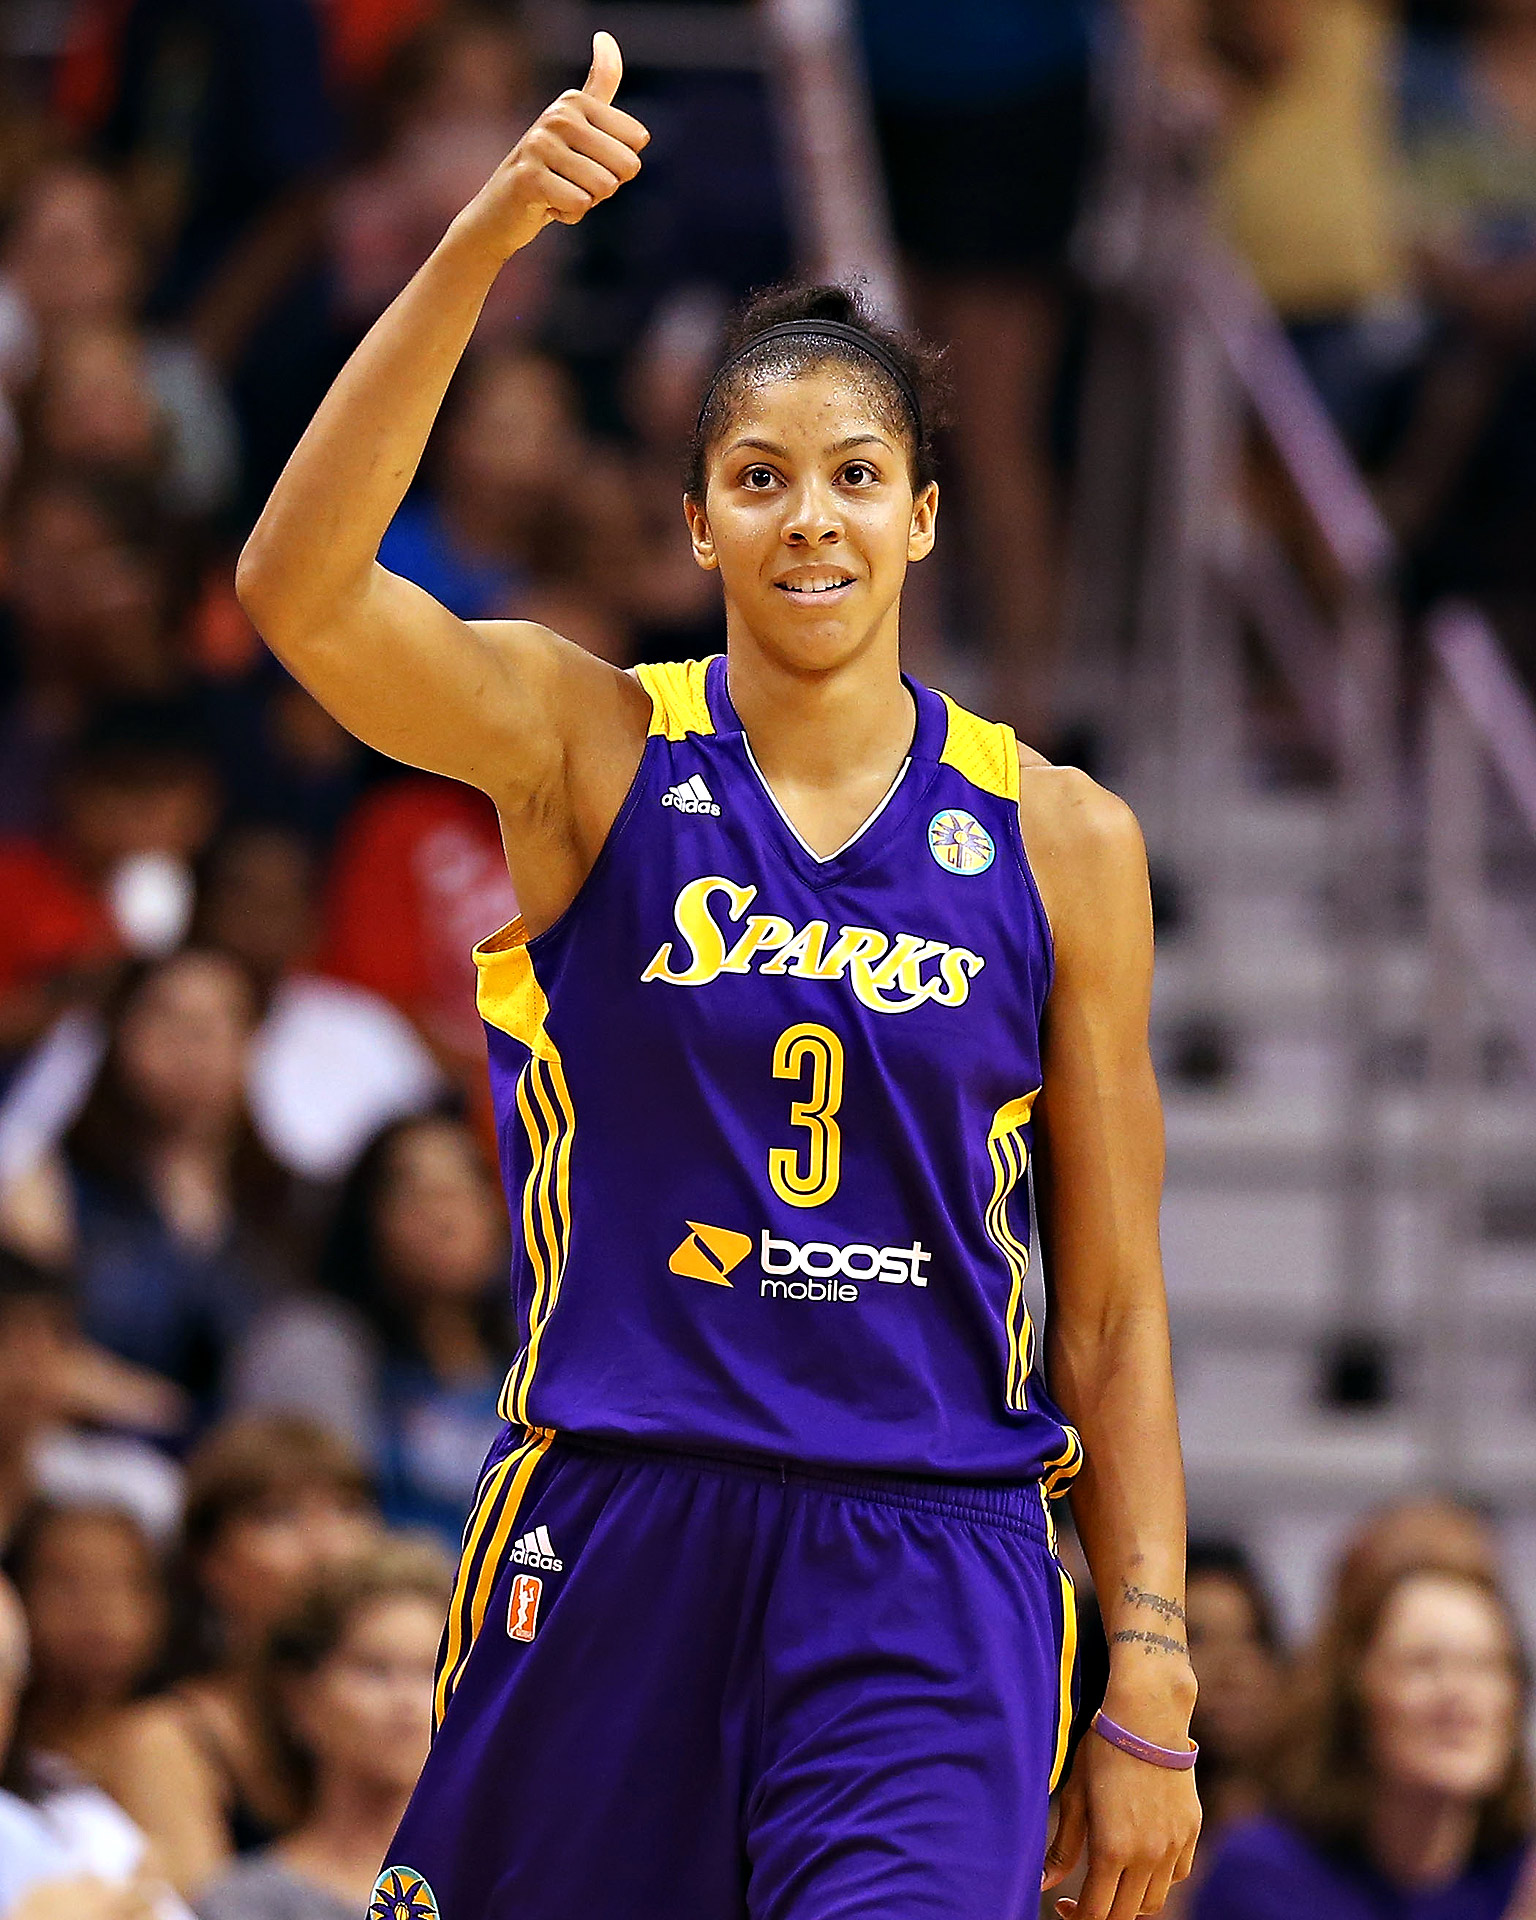 Candace Parker earned a  million dollar salary, leaving the net worth at 1 million in 2017